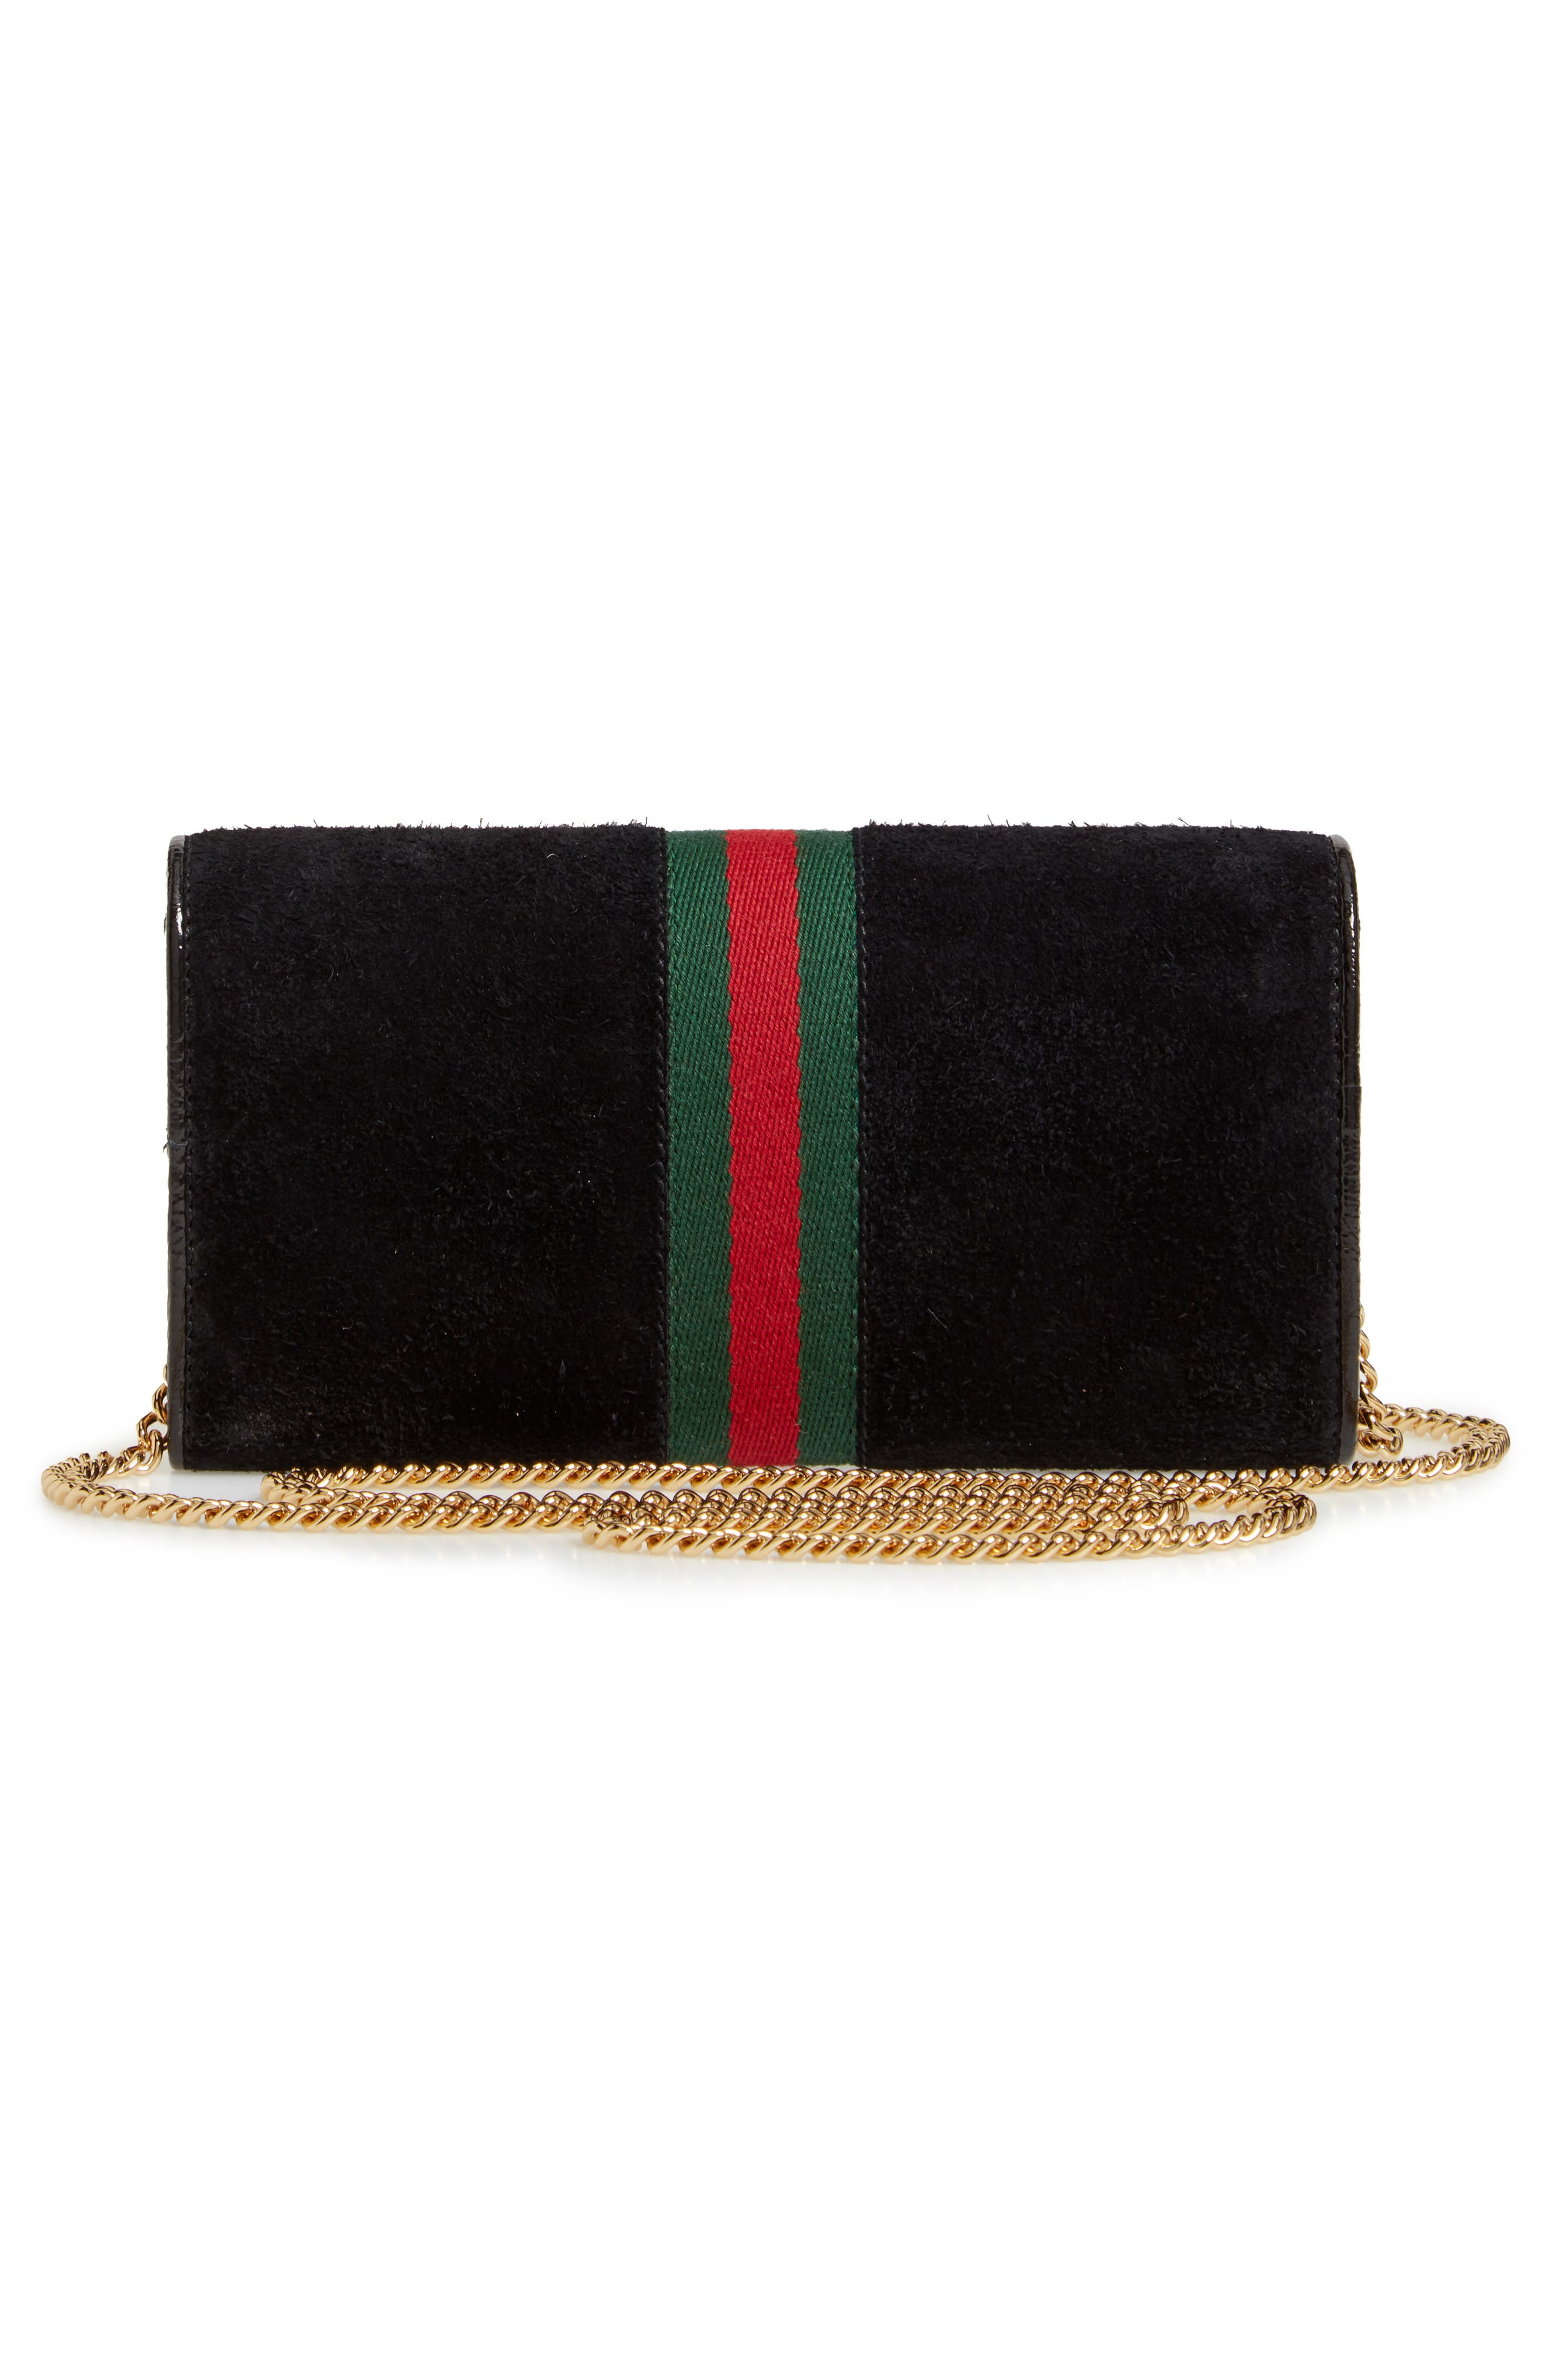 GUCCI, Ophidia Suede Continental Wallet, Alternate thumbnail 3, color, NERO/ VERT/ RED